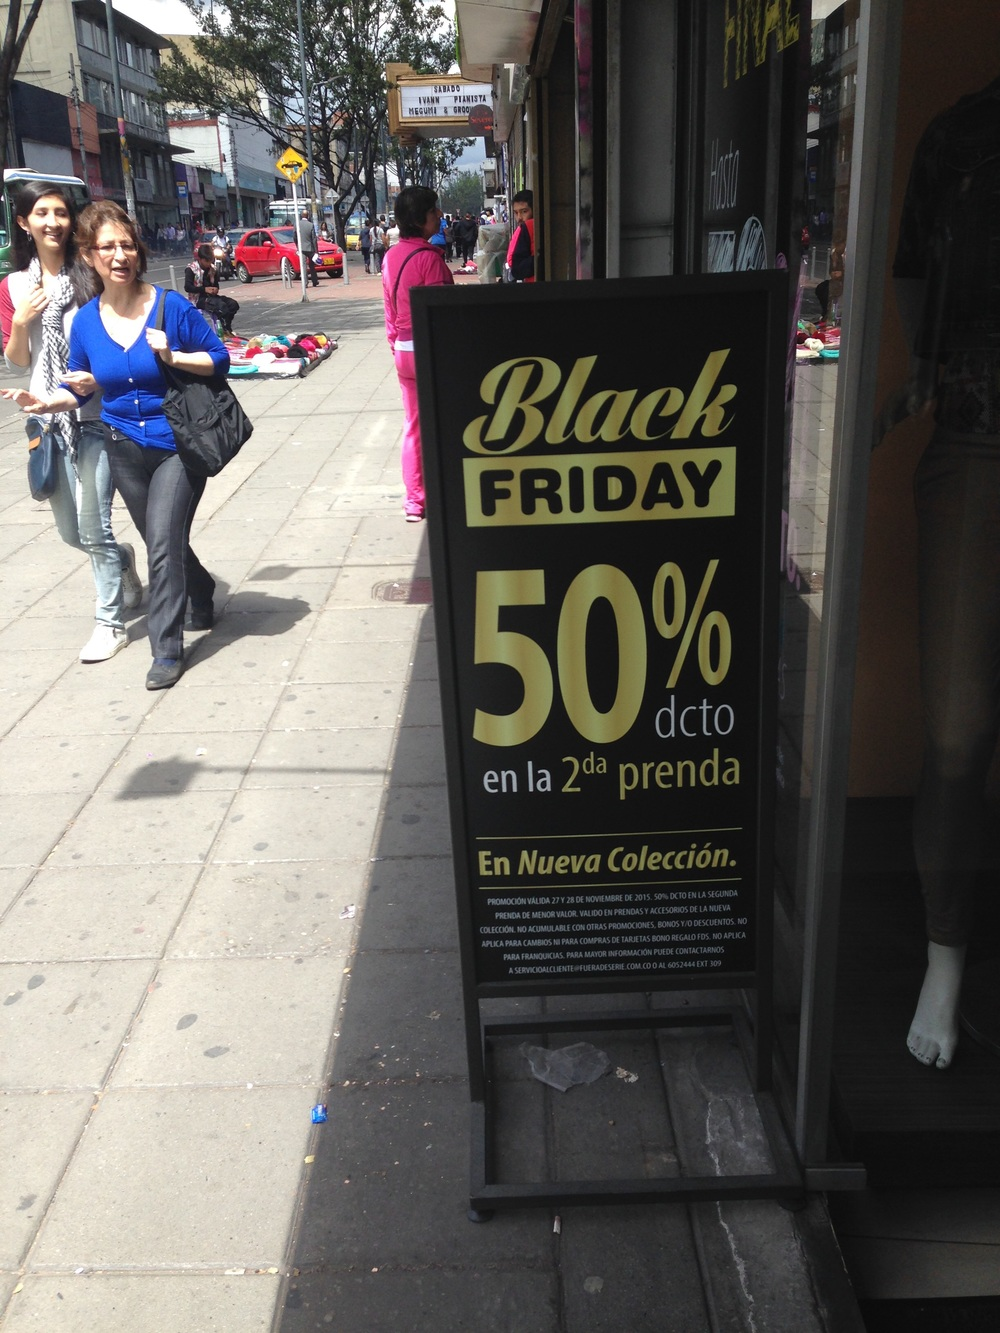 Black Friday, Colombian style (in English, no less).